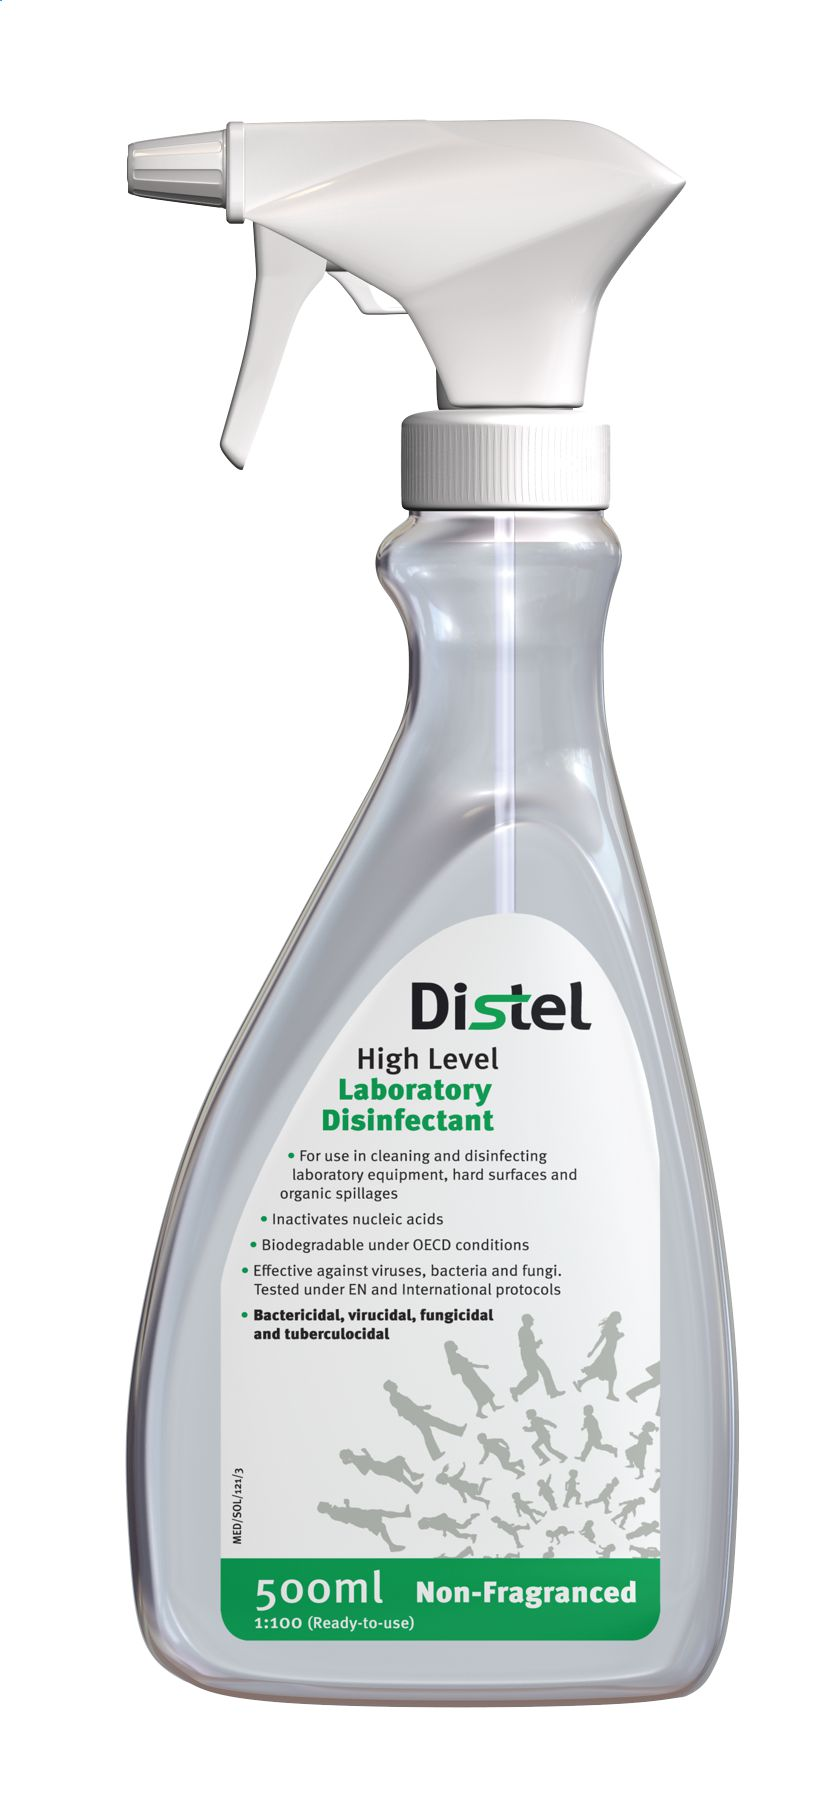 Image – Distel Disinfectant - Ready to Use Spray - key visual